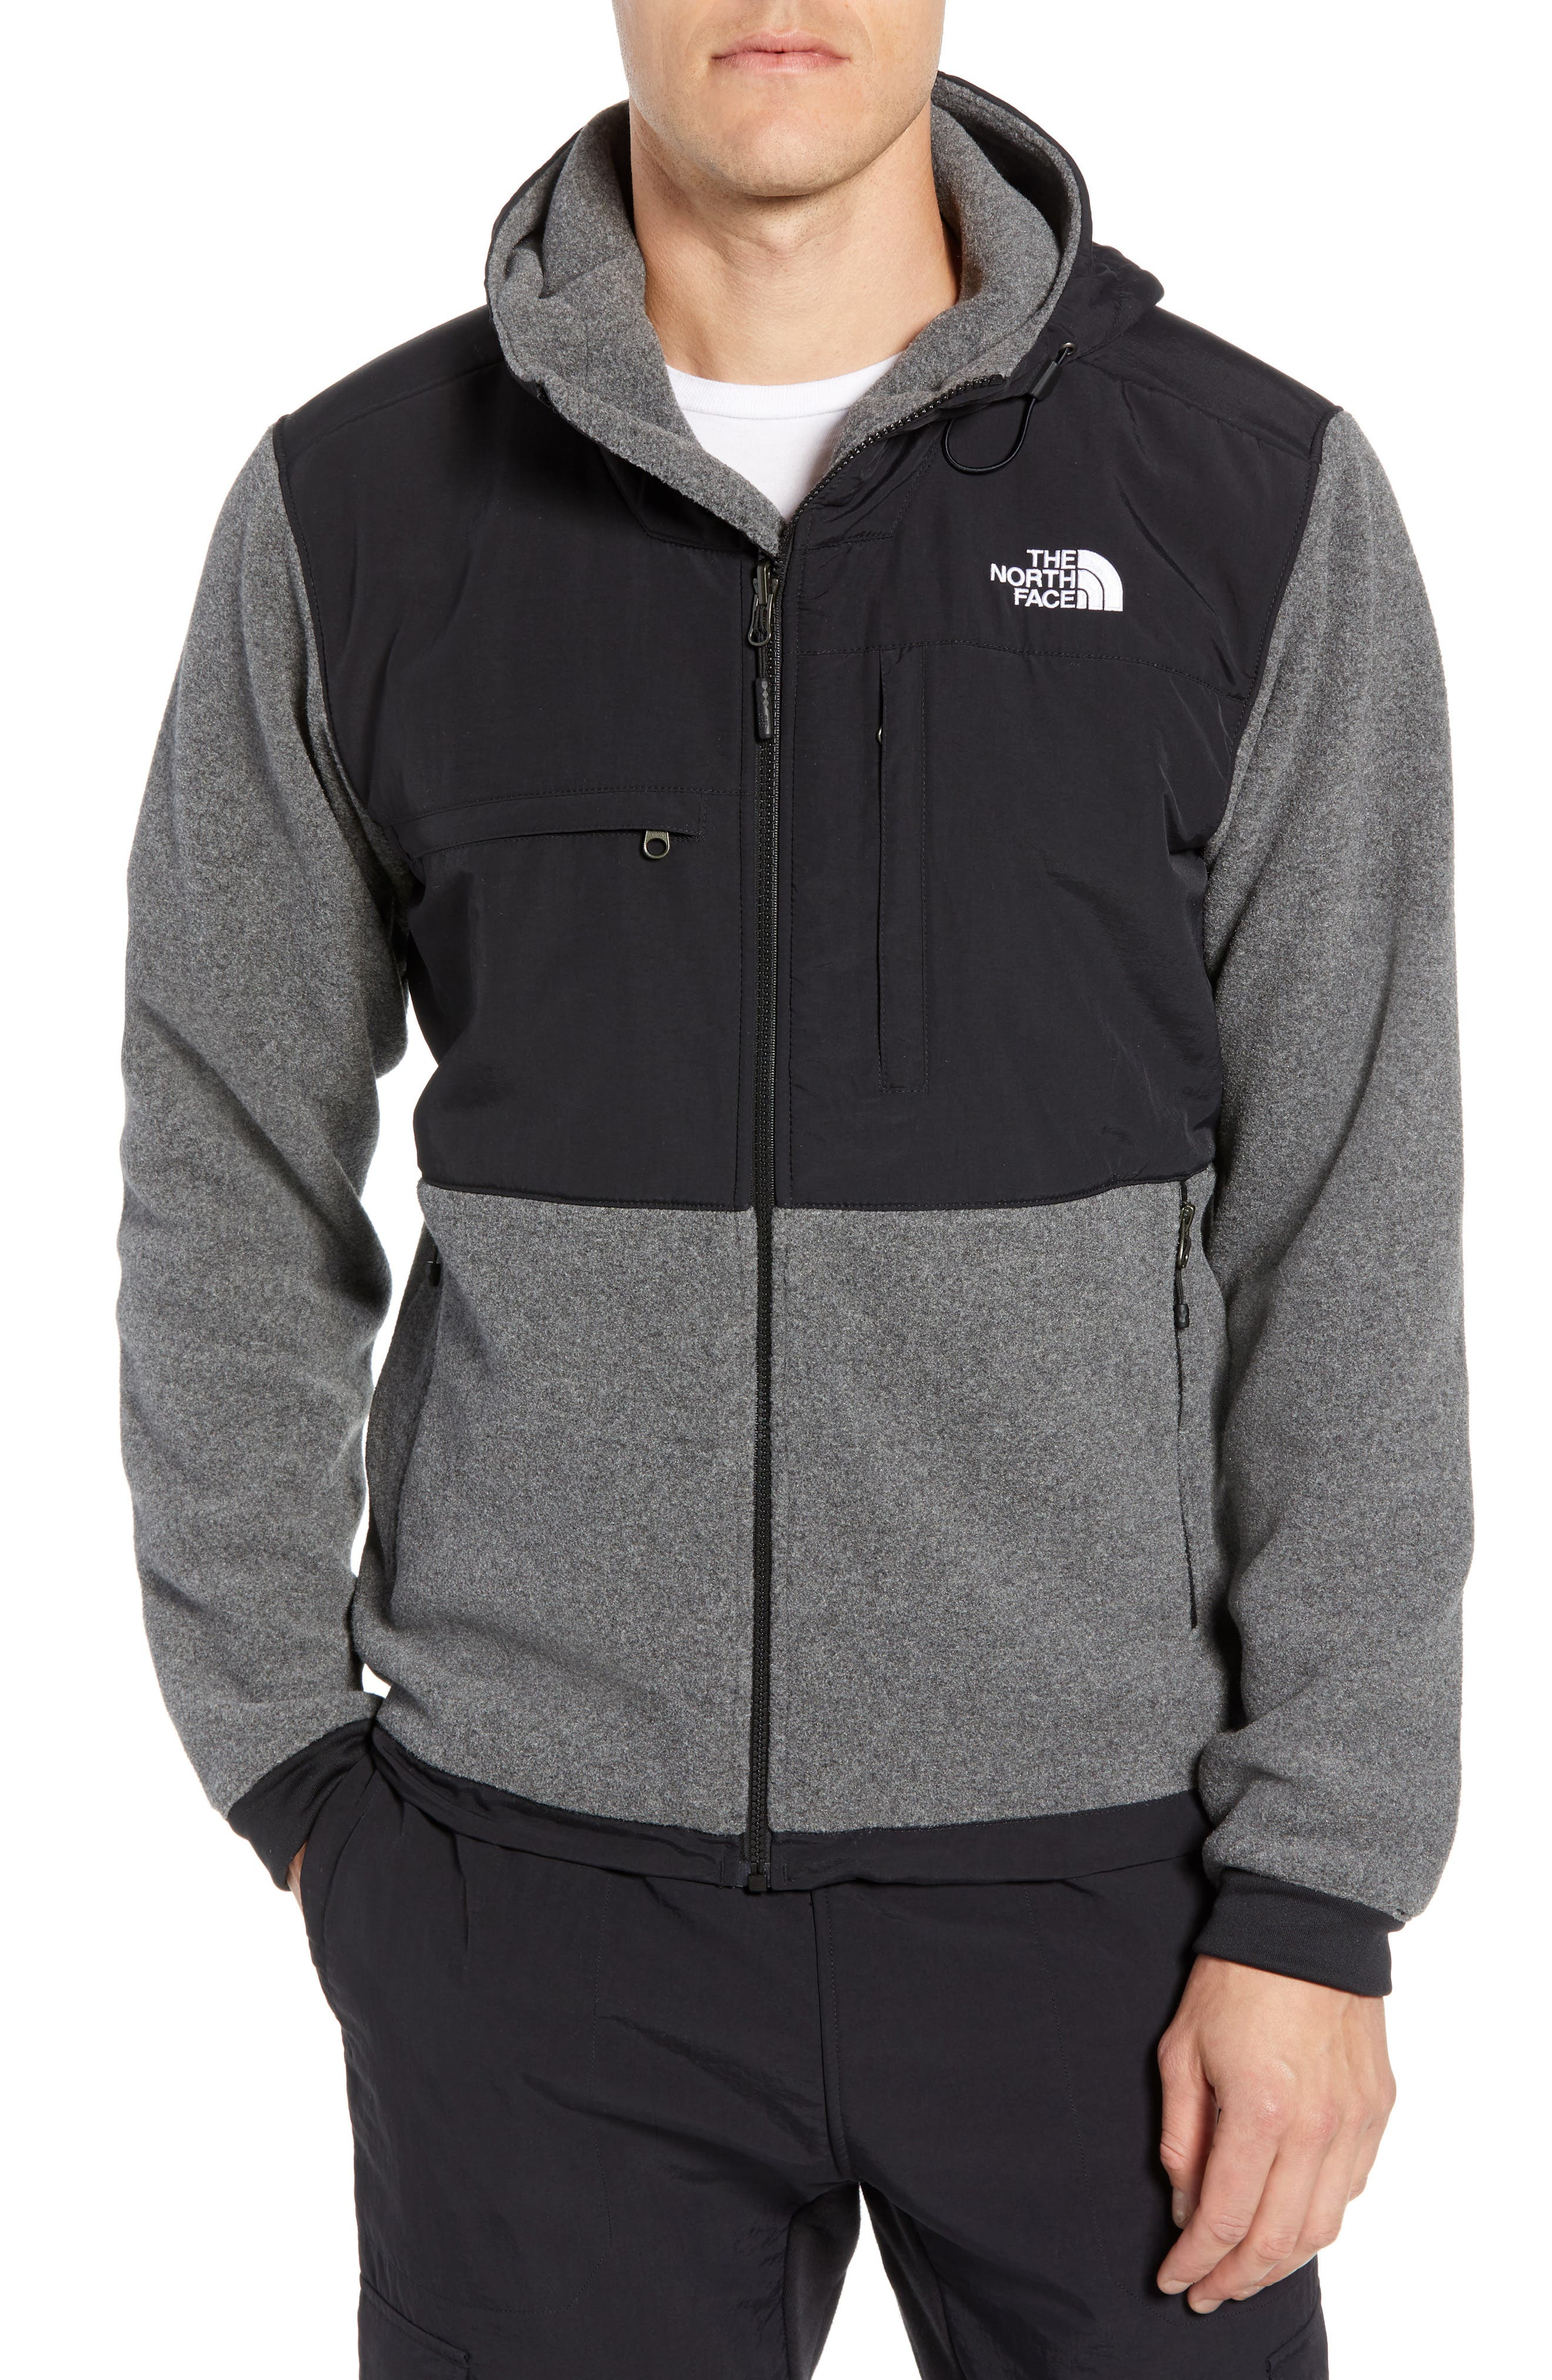 Denali 2 Hooded Jacket,                         Main,                         color, RECYCLED CHARCOAL GREY HEATHER